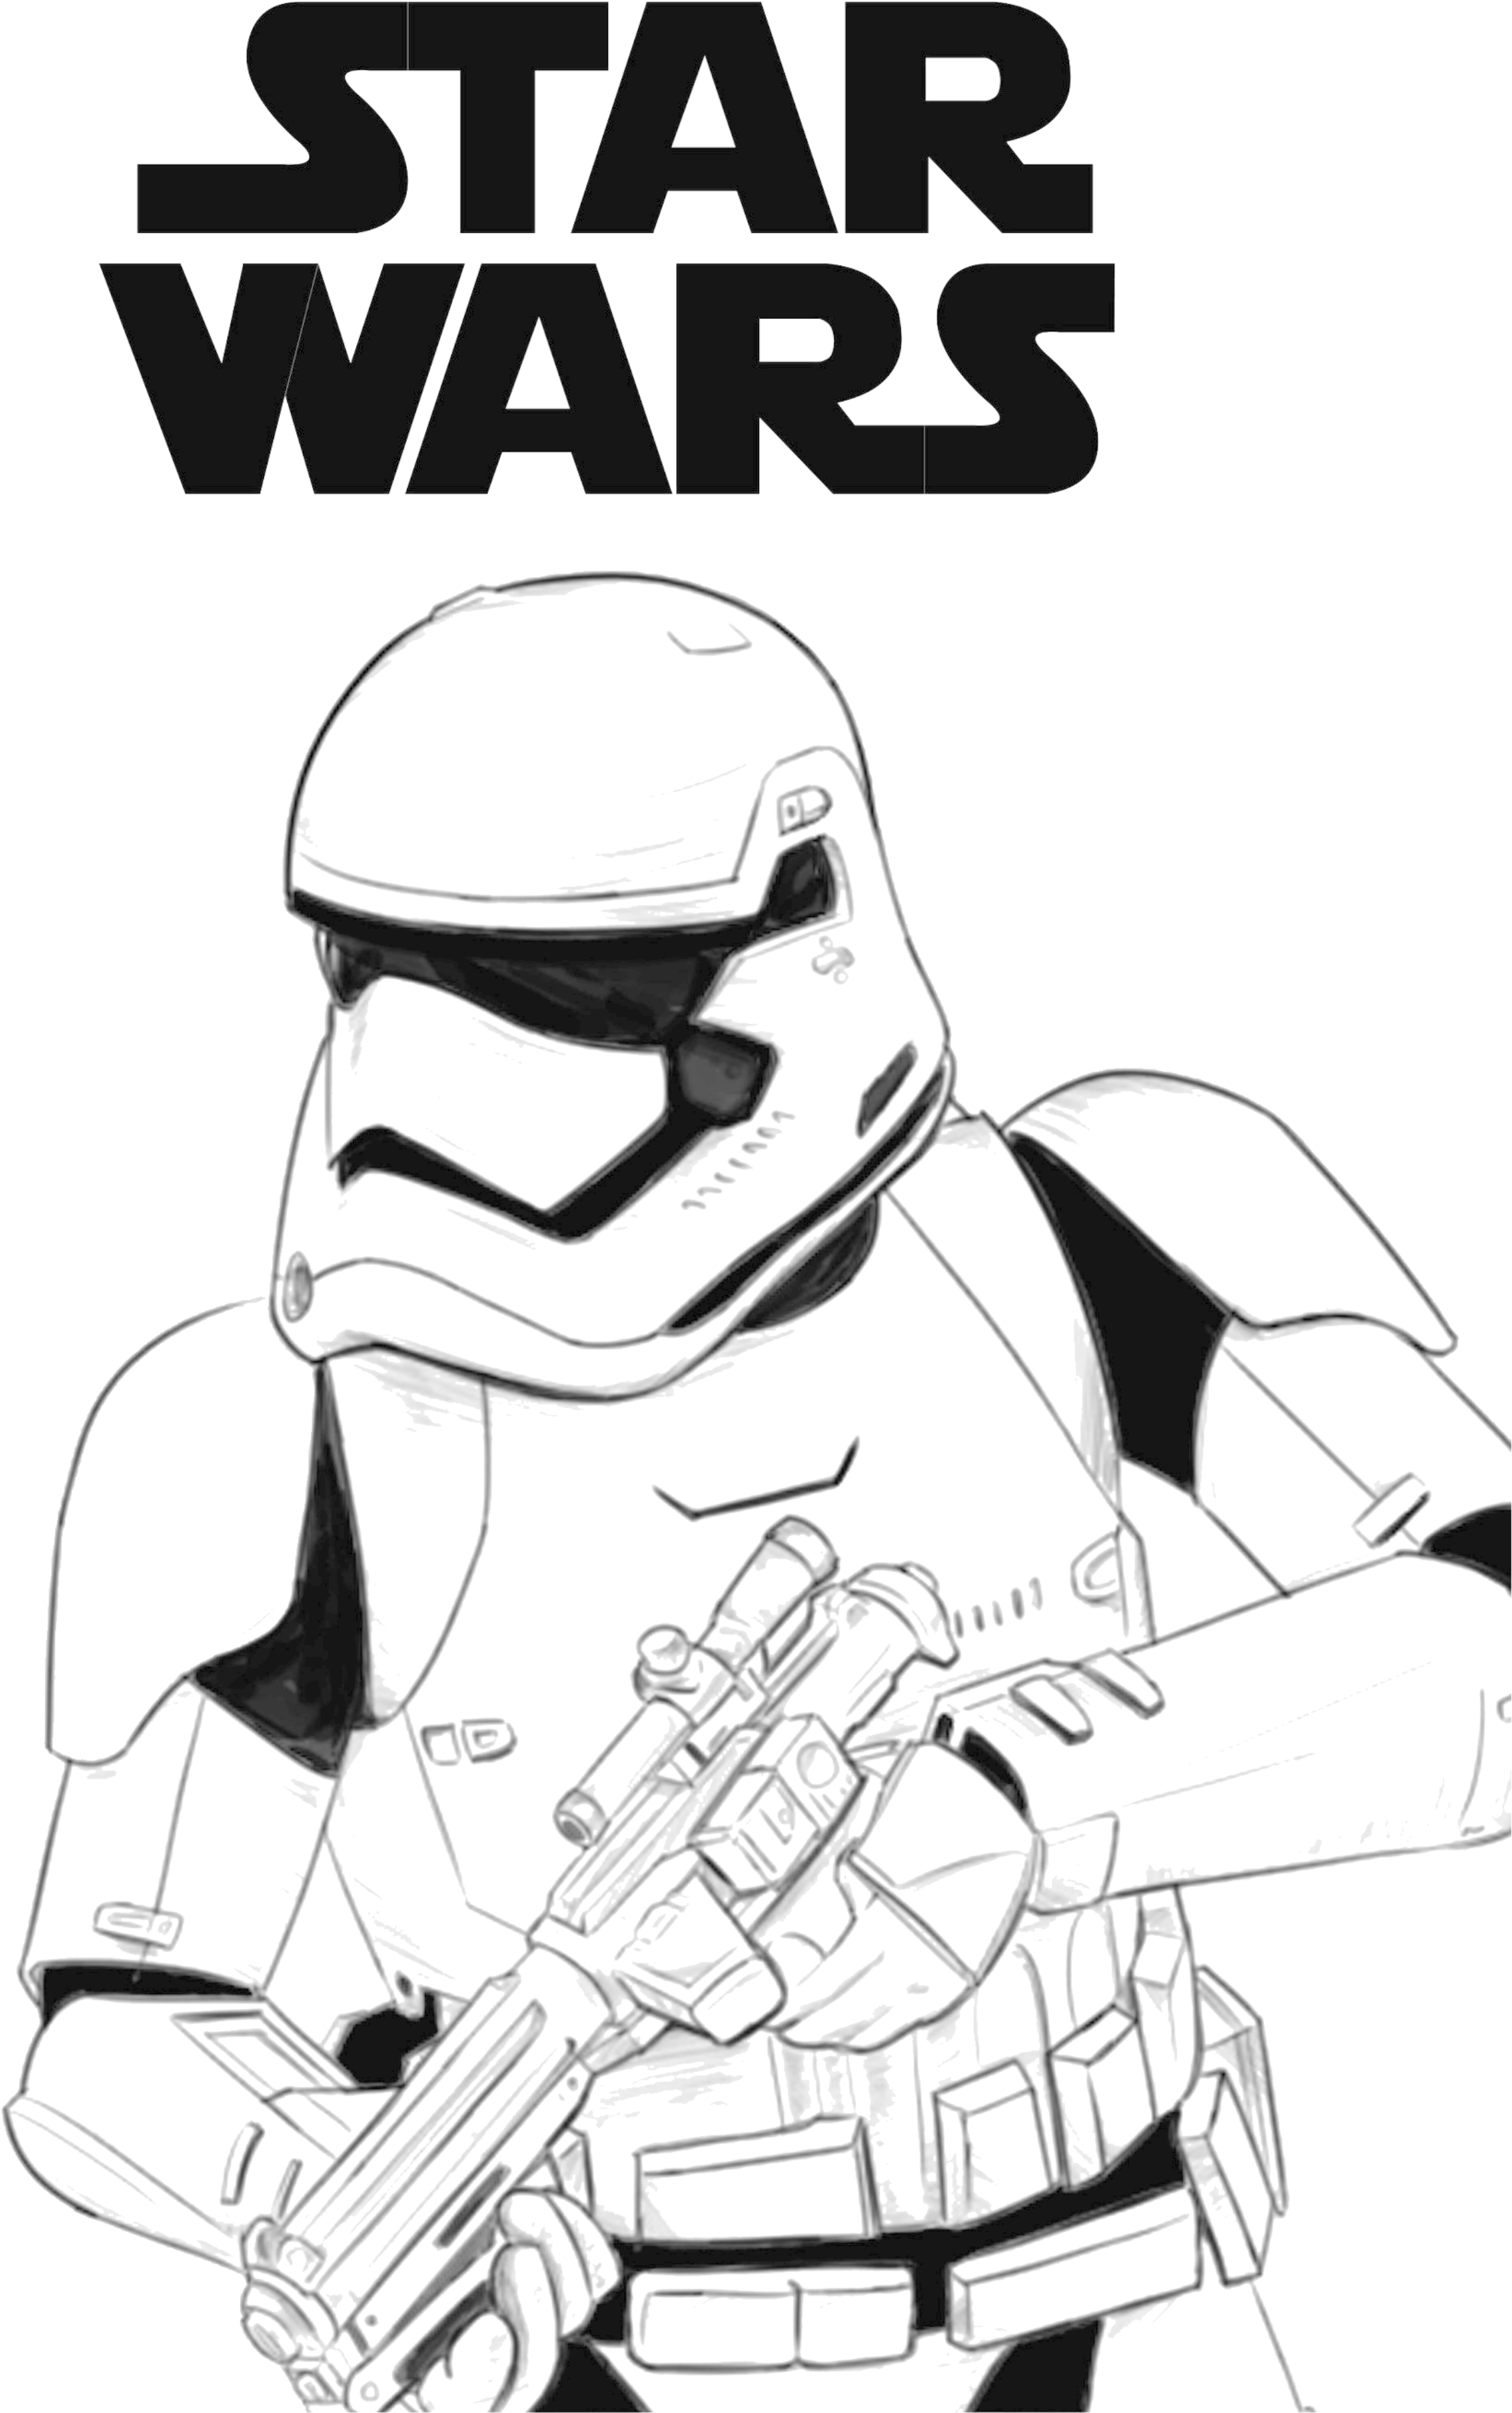 Download Star Wars First Order Stormtrooper Coloring Page Png Image With No Background Pngkey Com